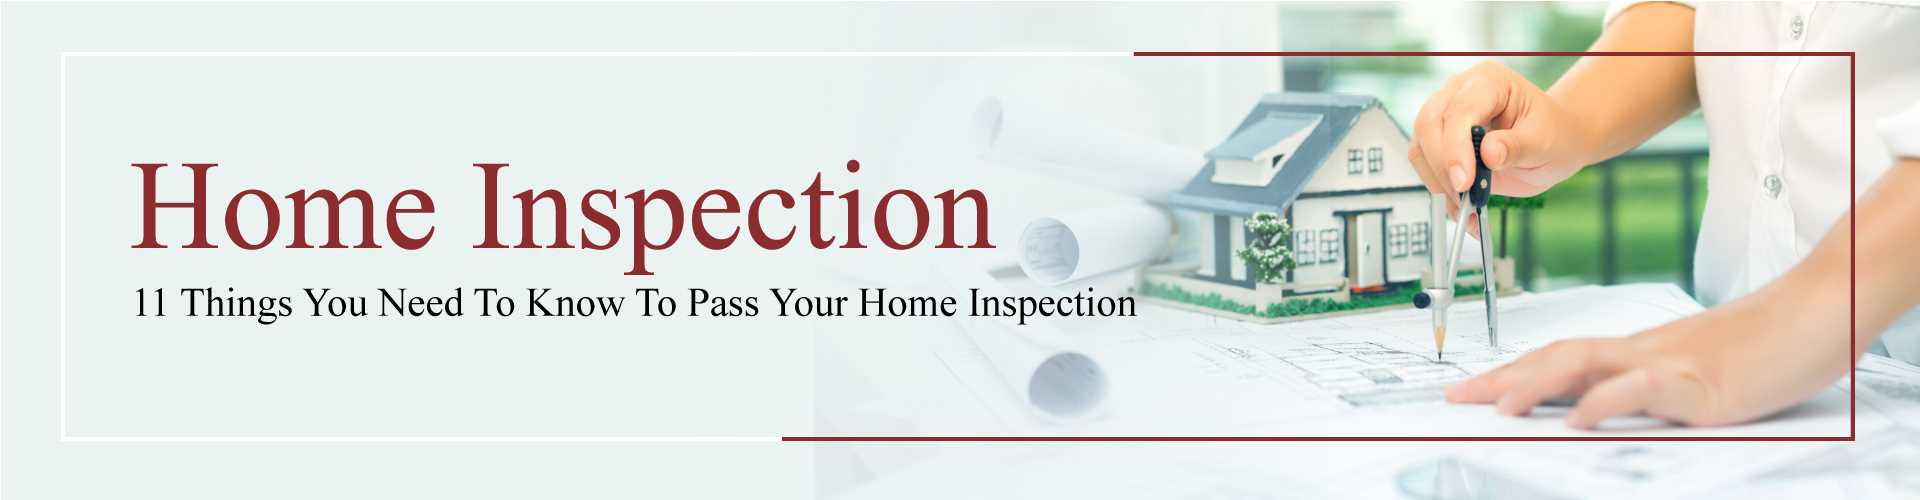 11 High Cost Inspection Traps You Should Know About Weeks Before Listing Your Home For Sale Image